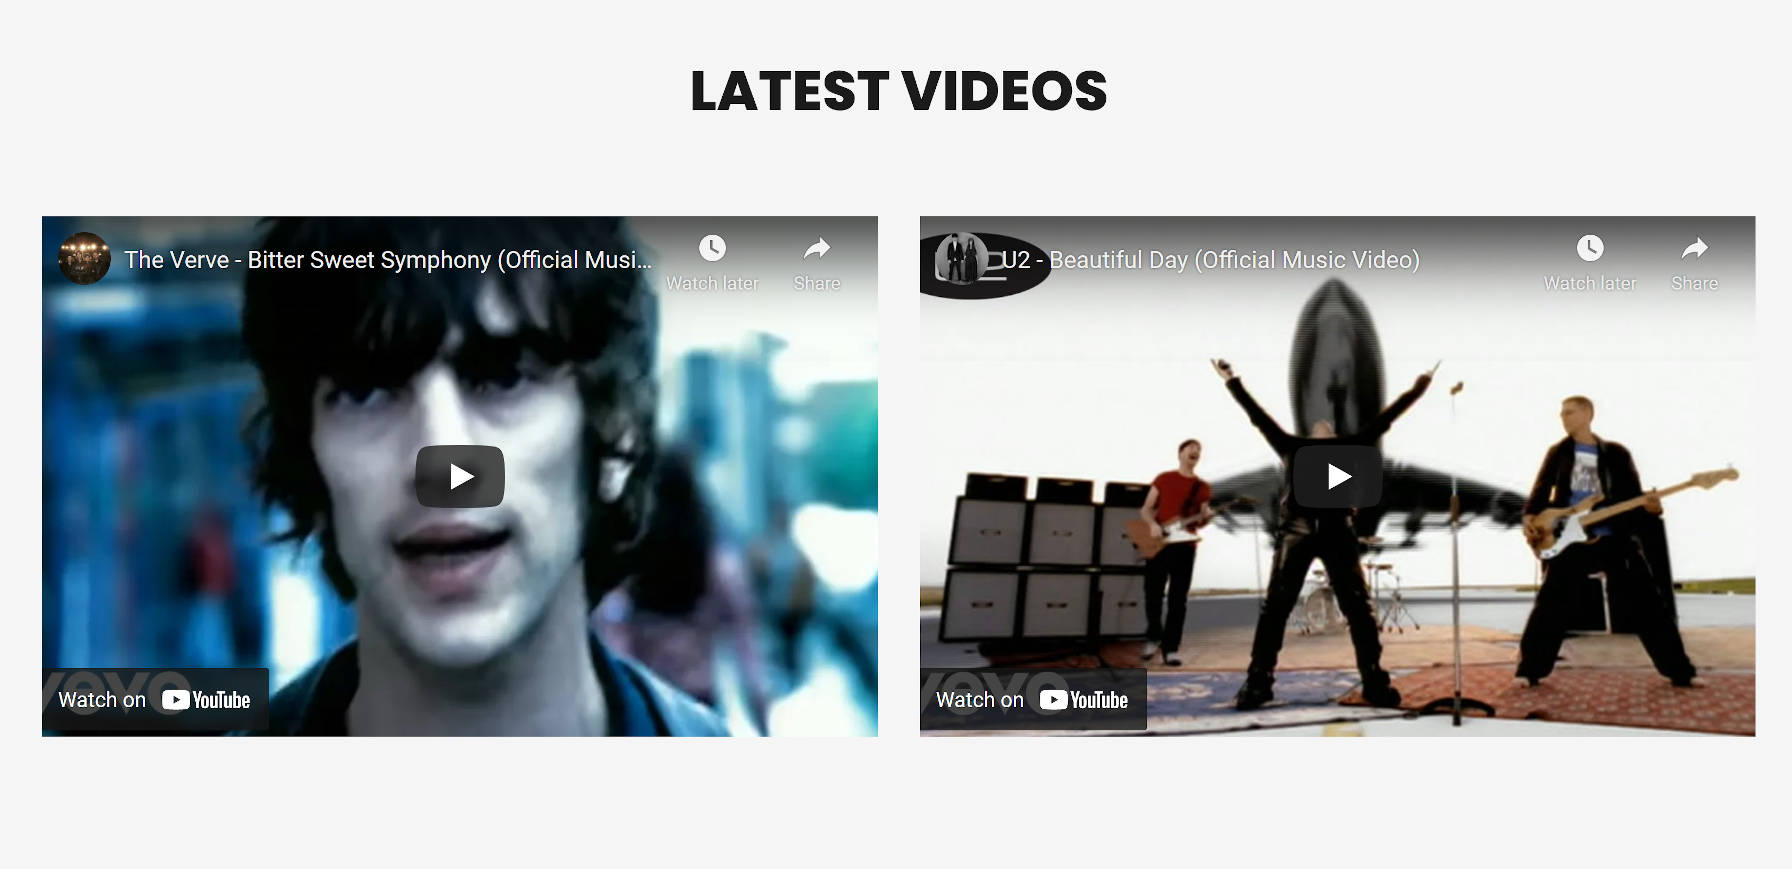 A section with two columns, each with an embedded YouTube video.